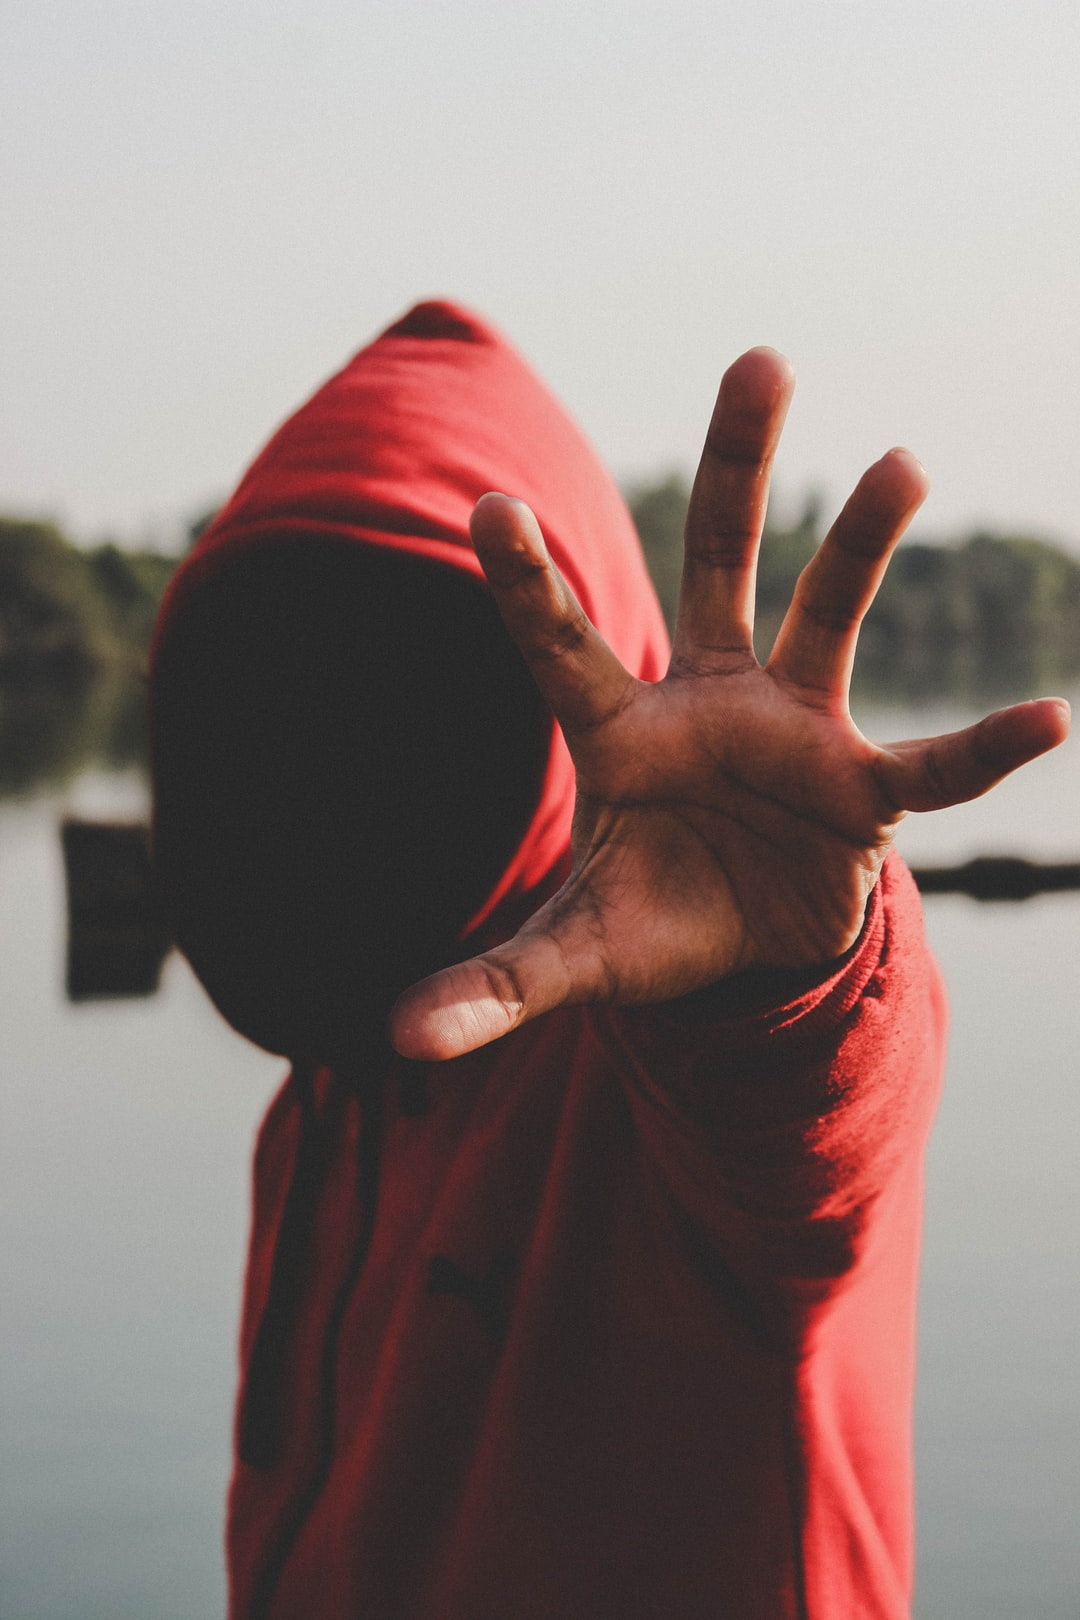 Man in hood stretching hand